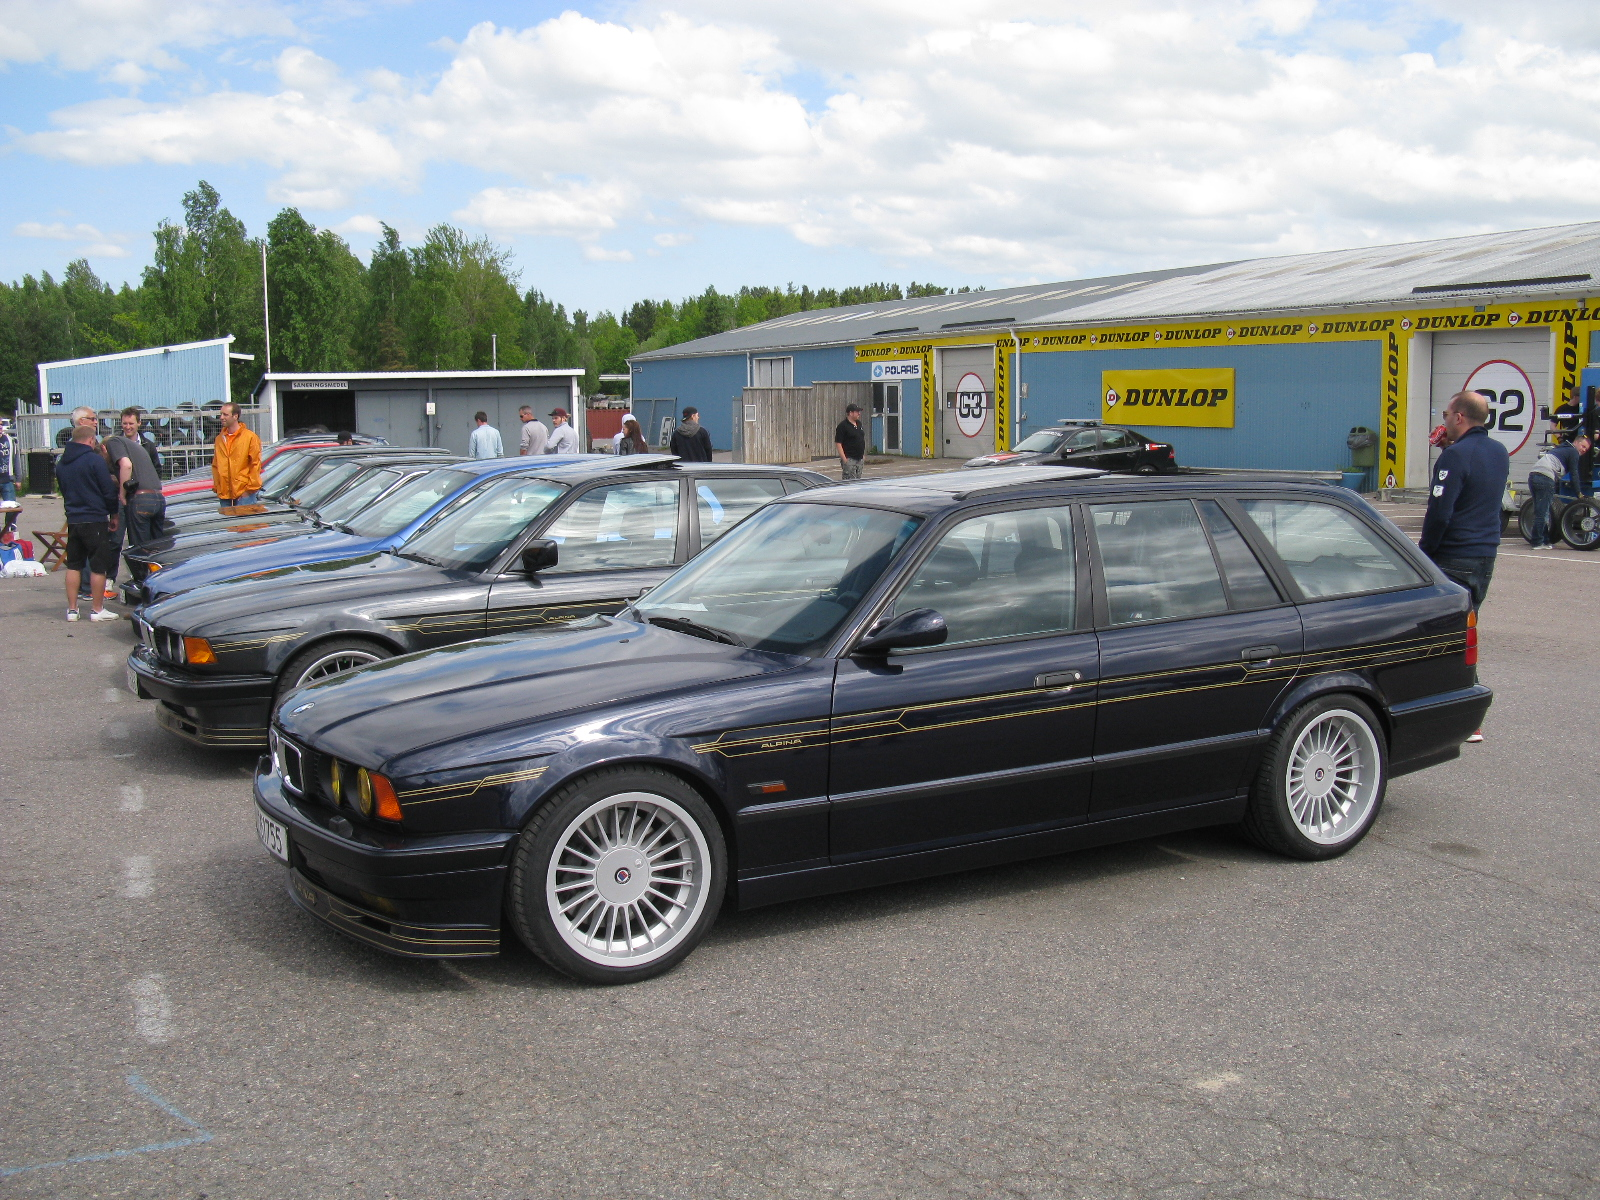 File Bmw Alpina B10 Biturbo Touring E34 8844002741 Jpg Wikimedia Commons